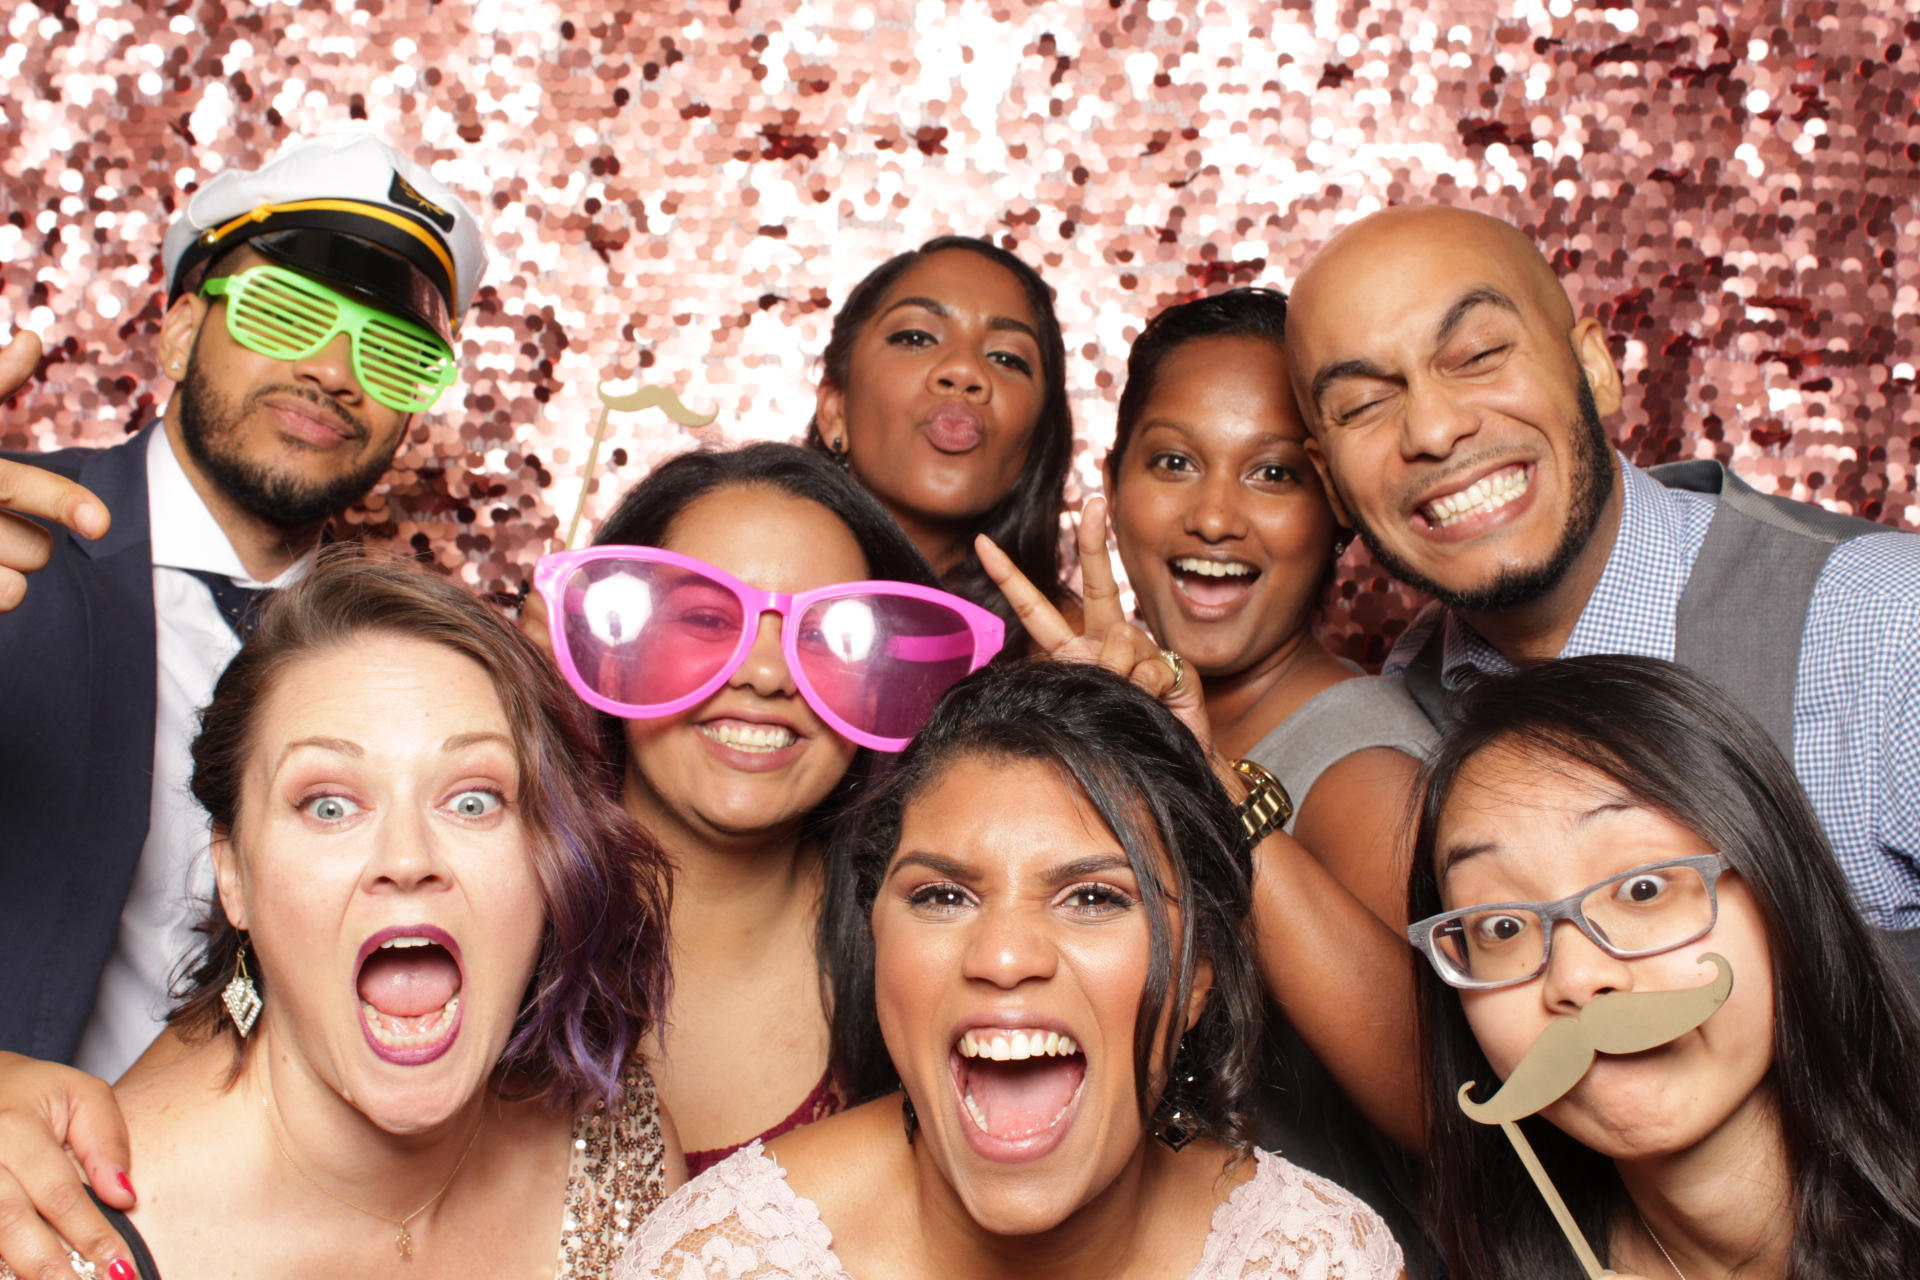 Philadelphia party photo booth rental